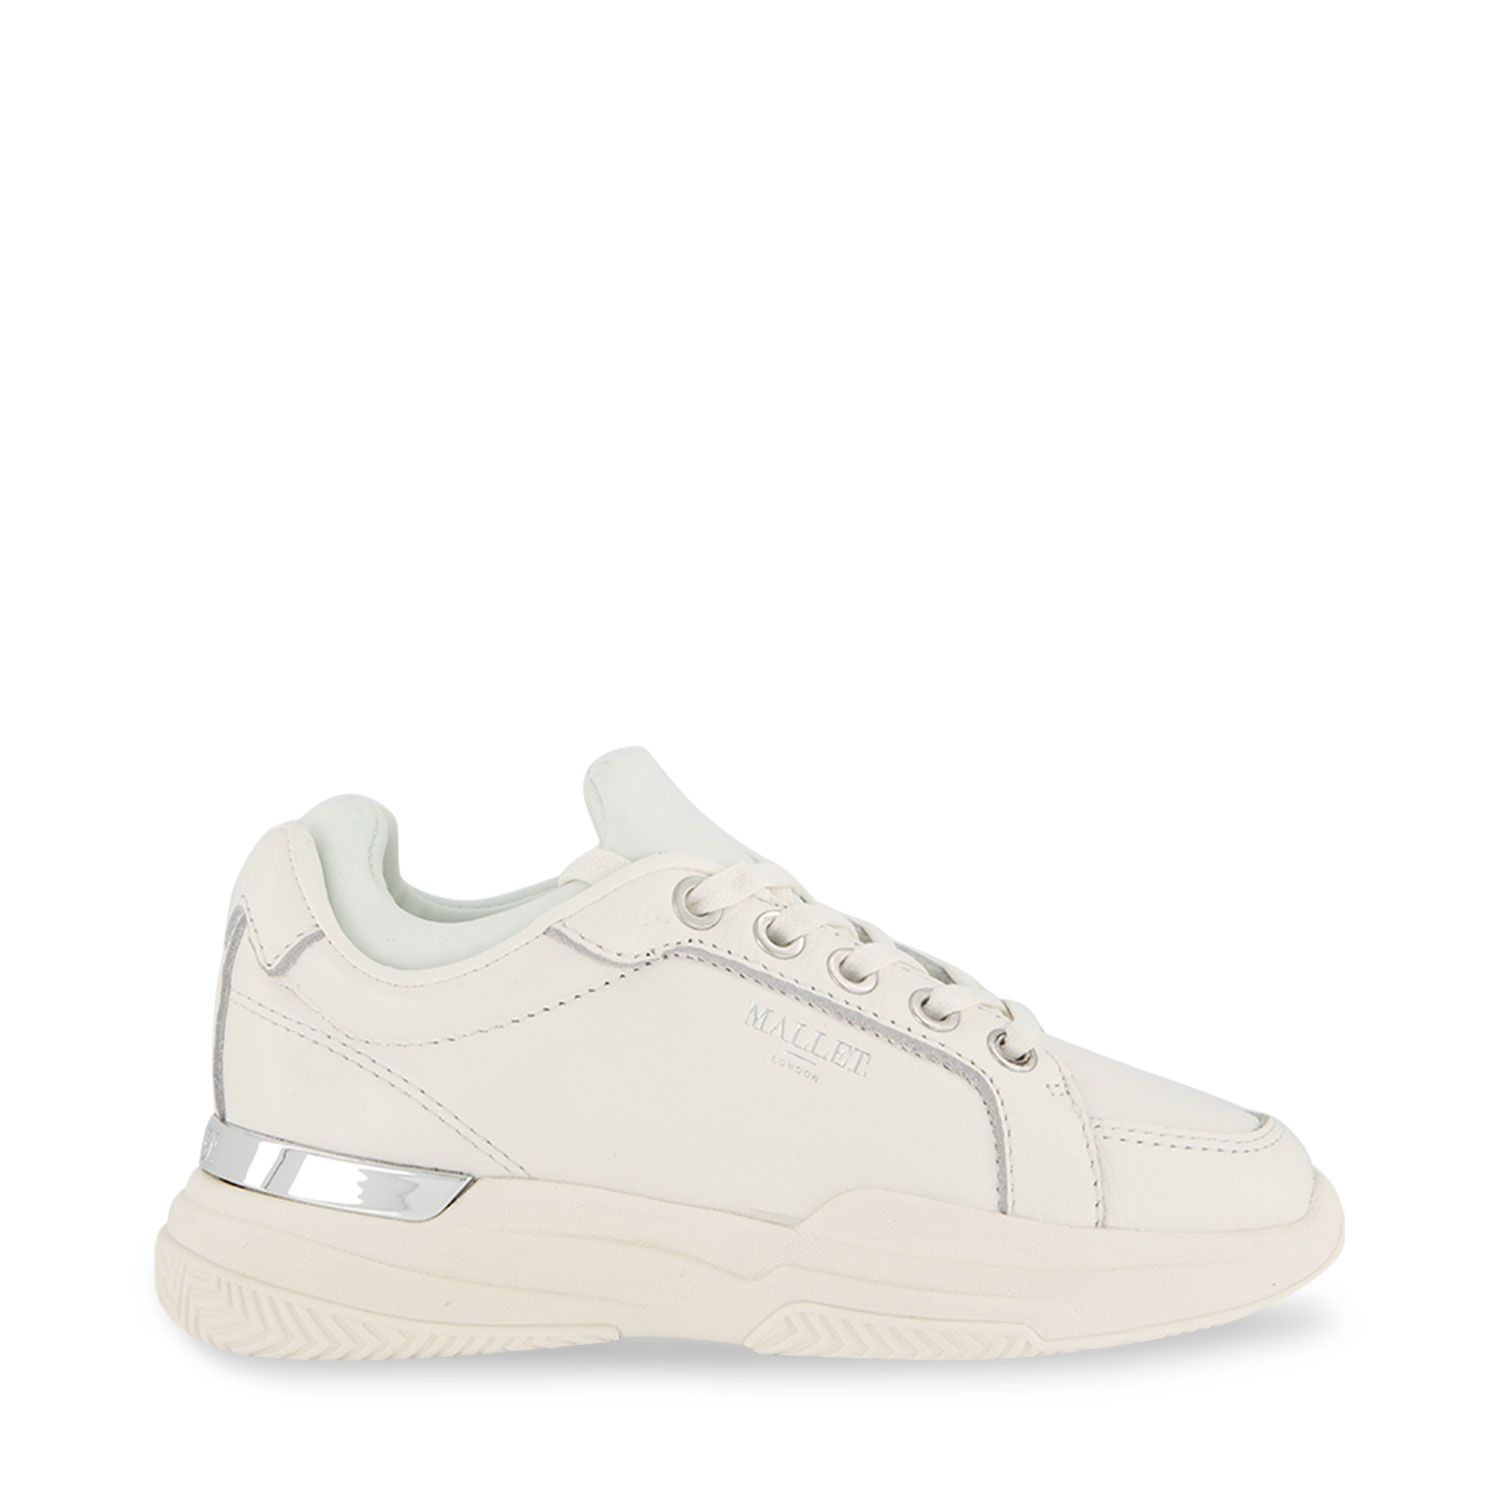 Picture of Mallet MK3051WHT kids sneakers white